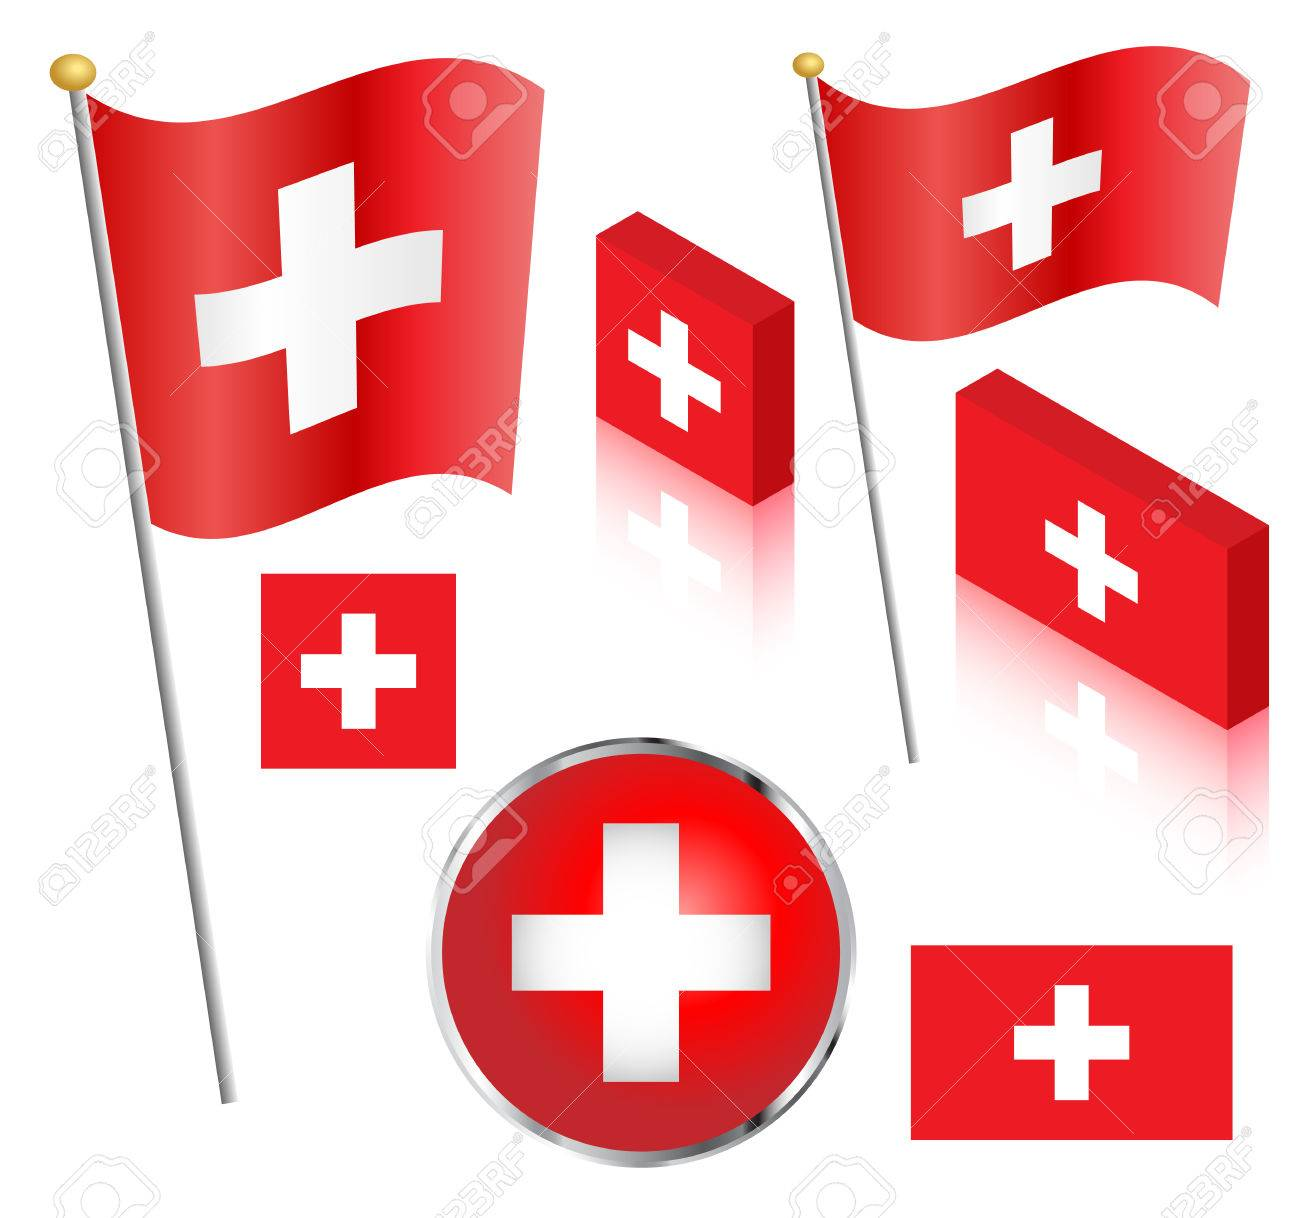 Swiss flag on a pole. Traditional square, and non-traditional rectangular badge and isometric designs vector illustration. - 41372407